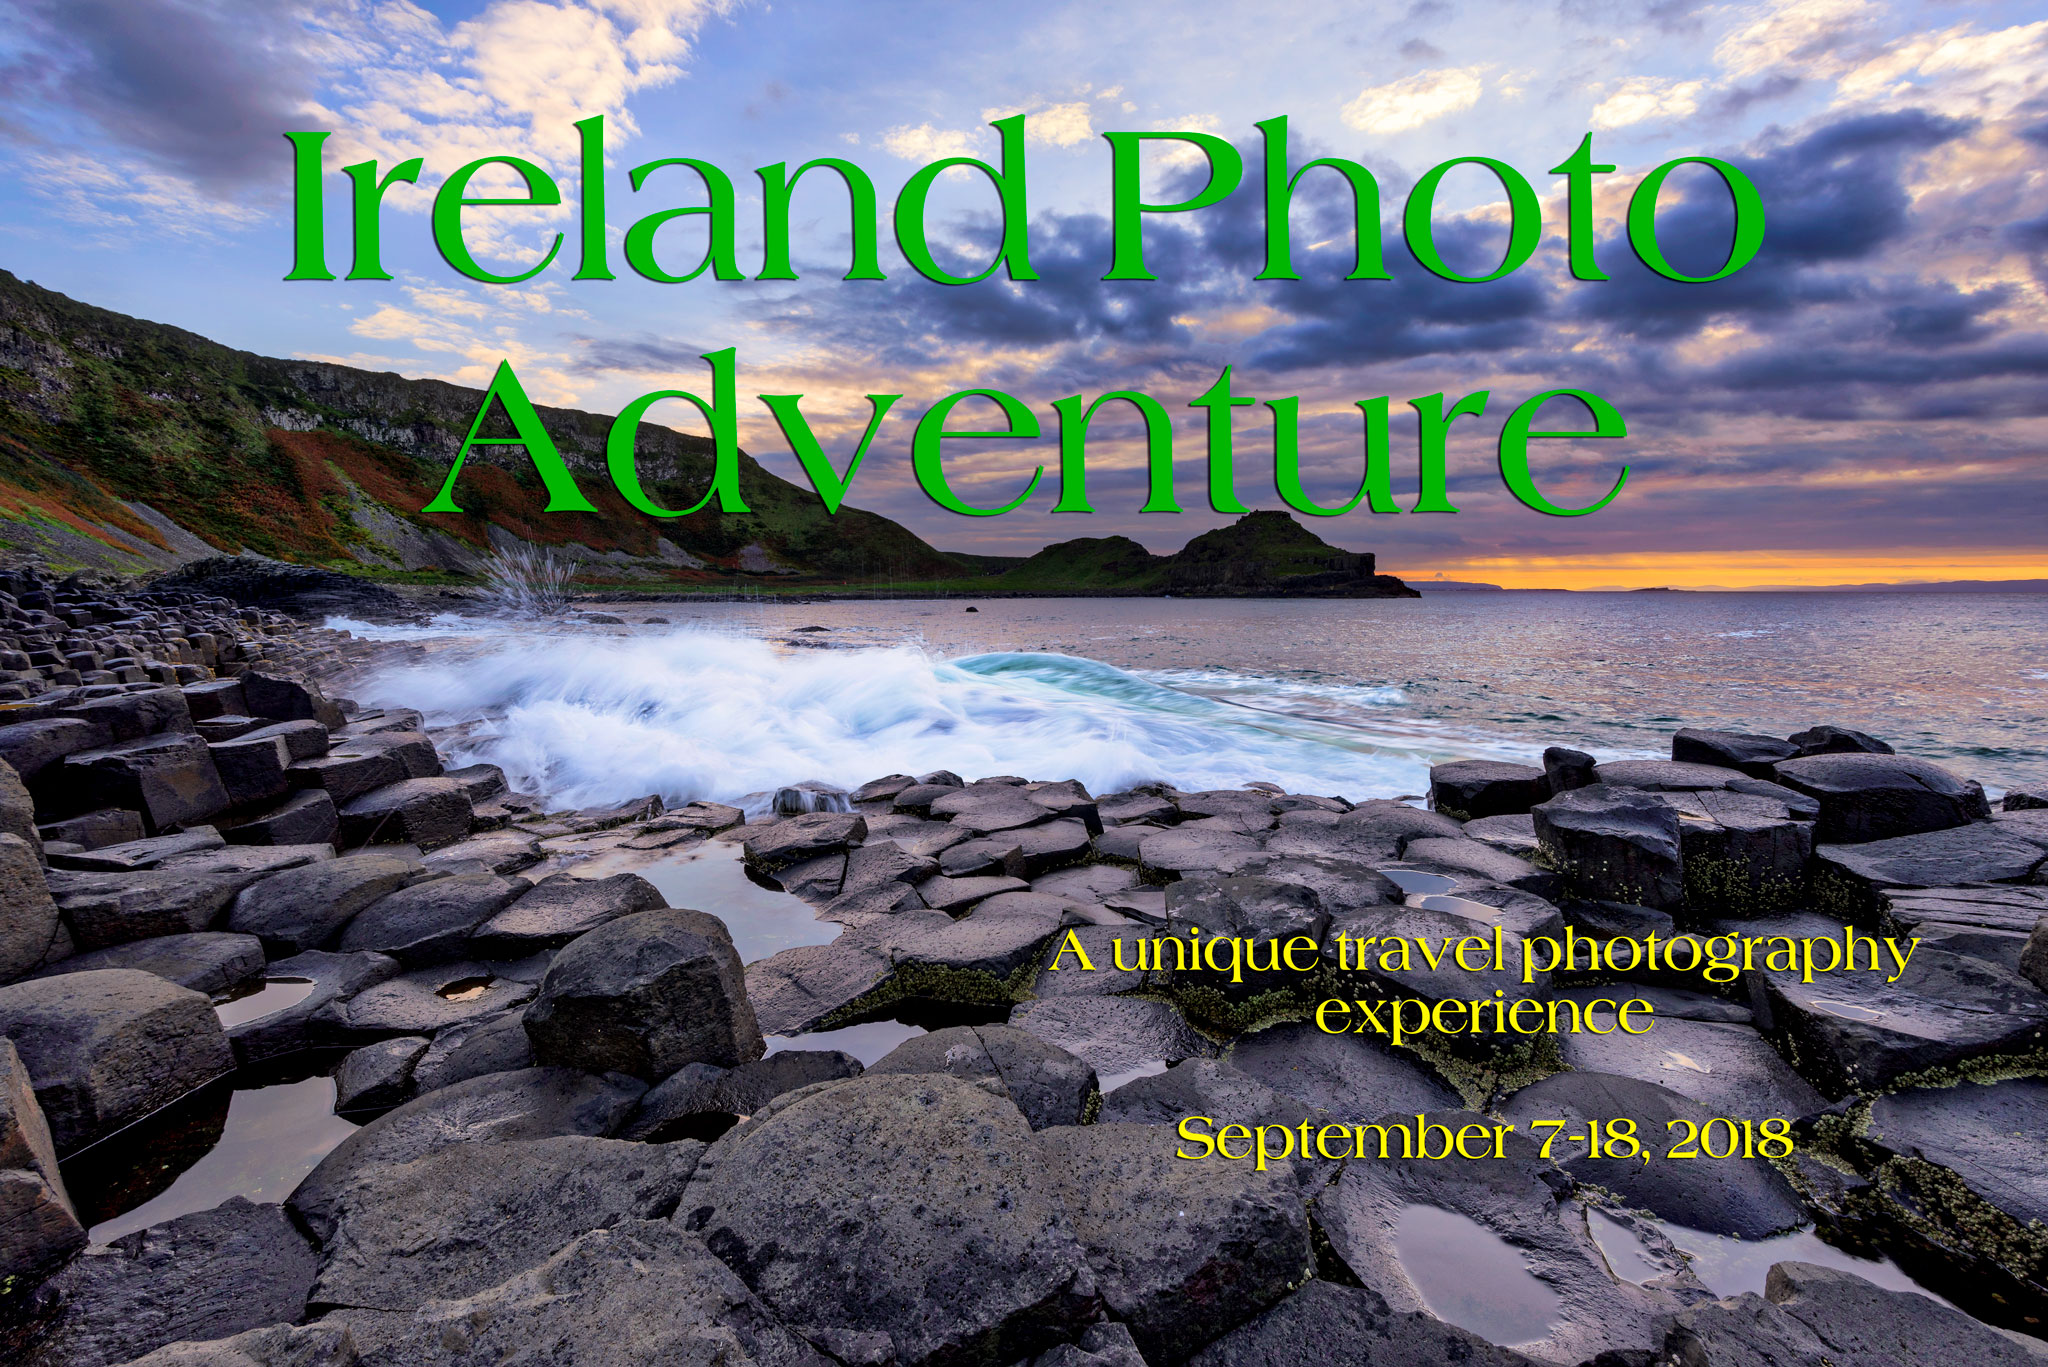 Ireland Photo Safari 2018